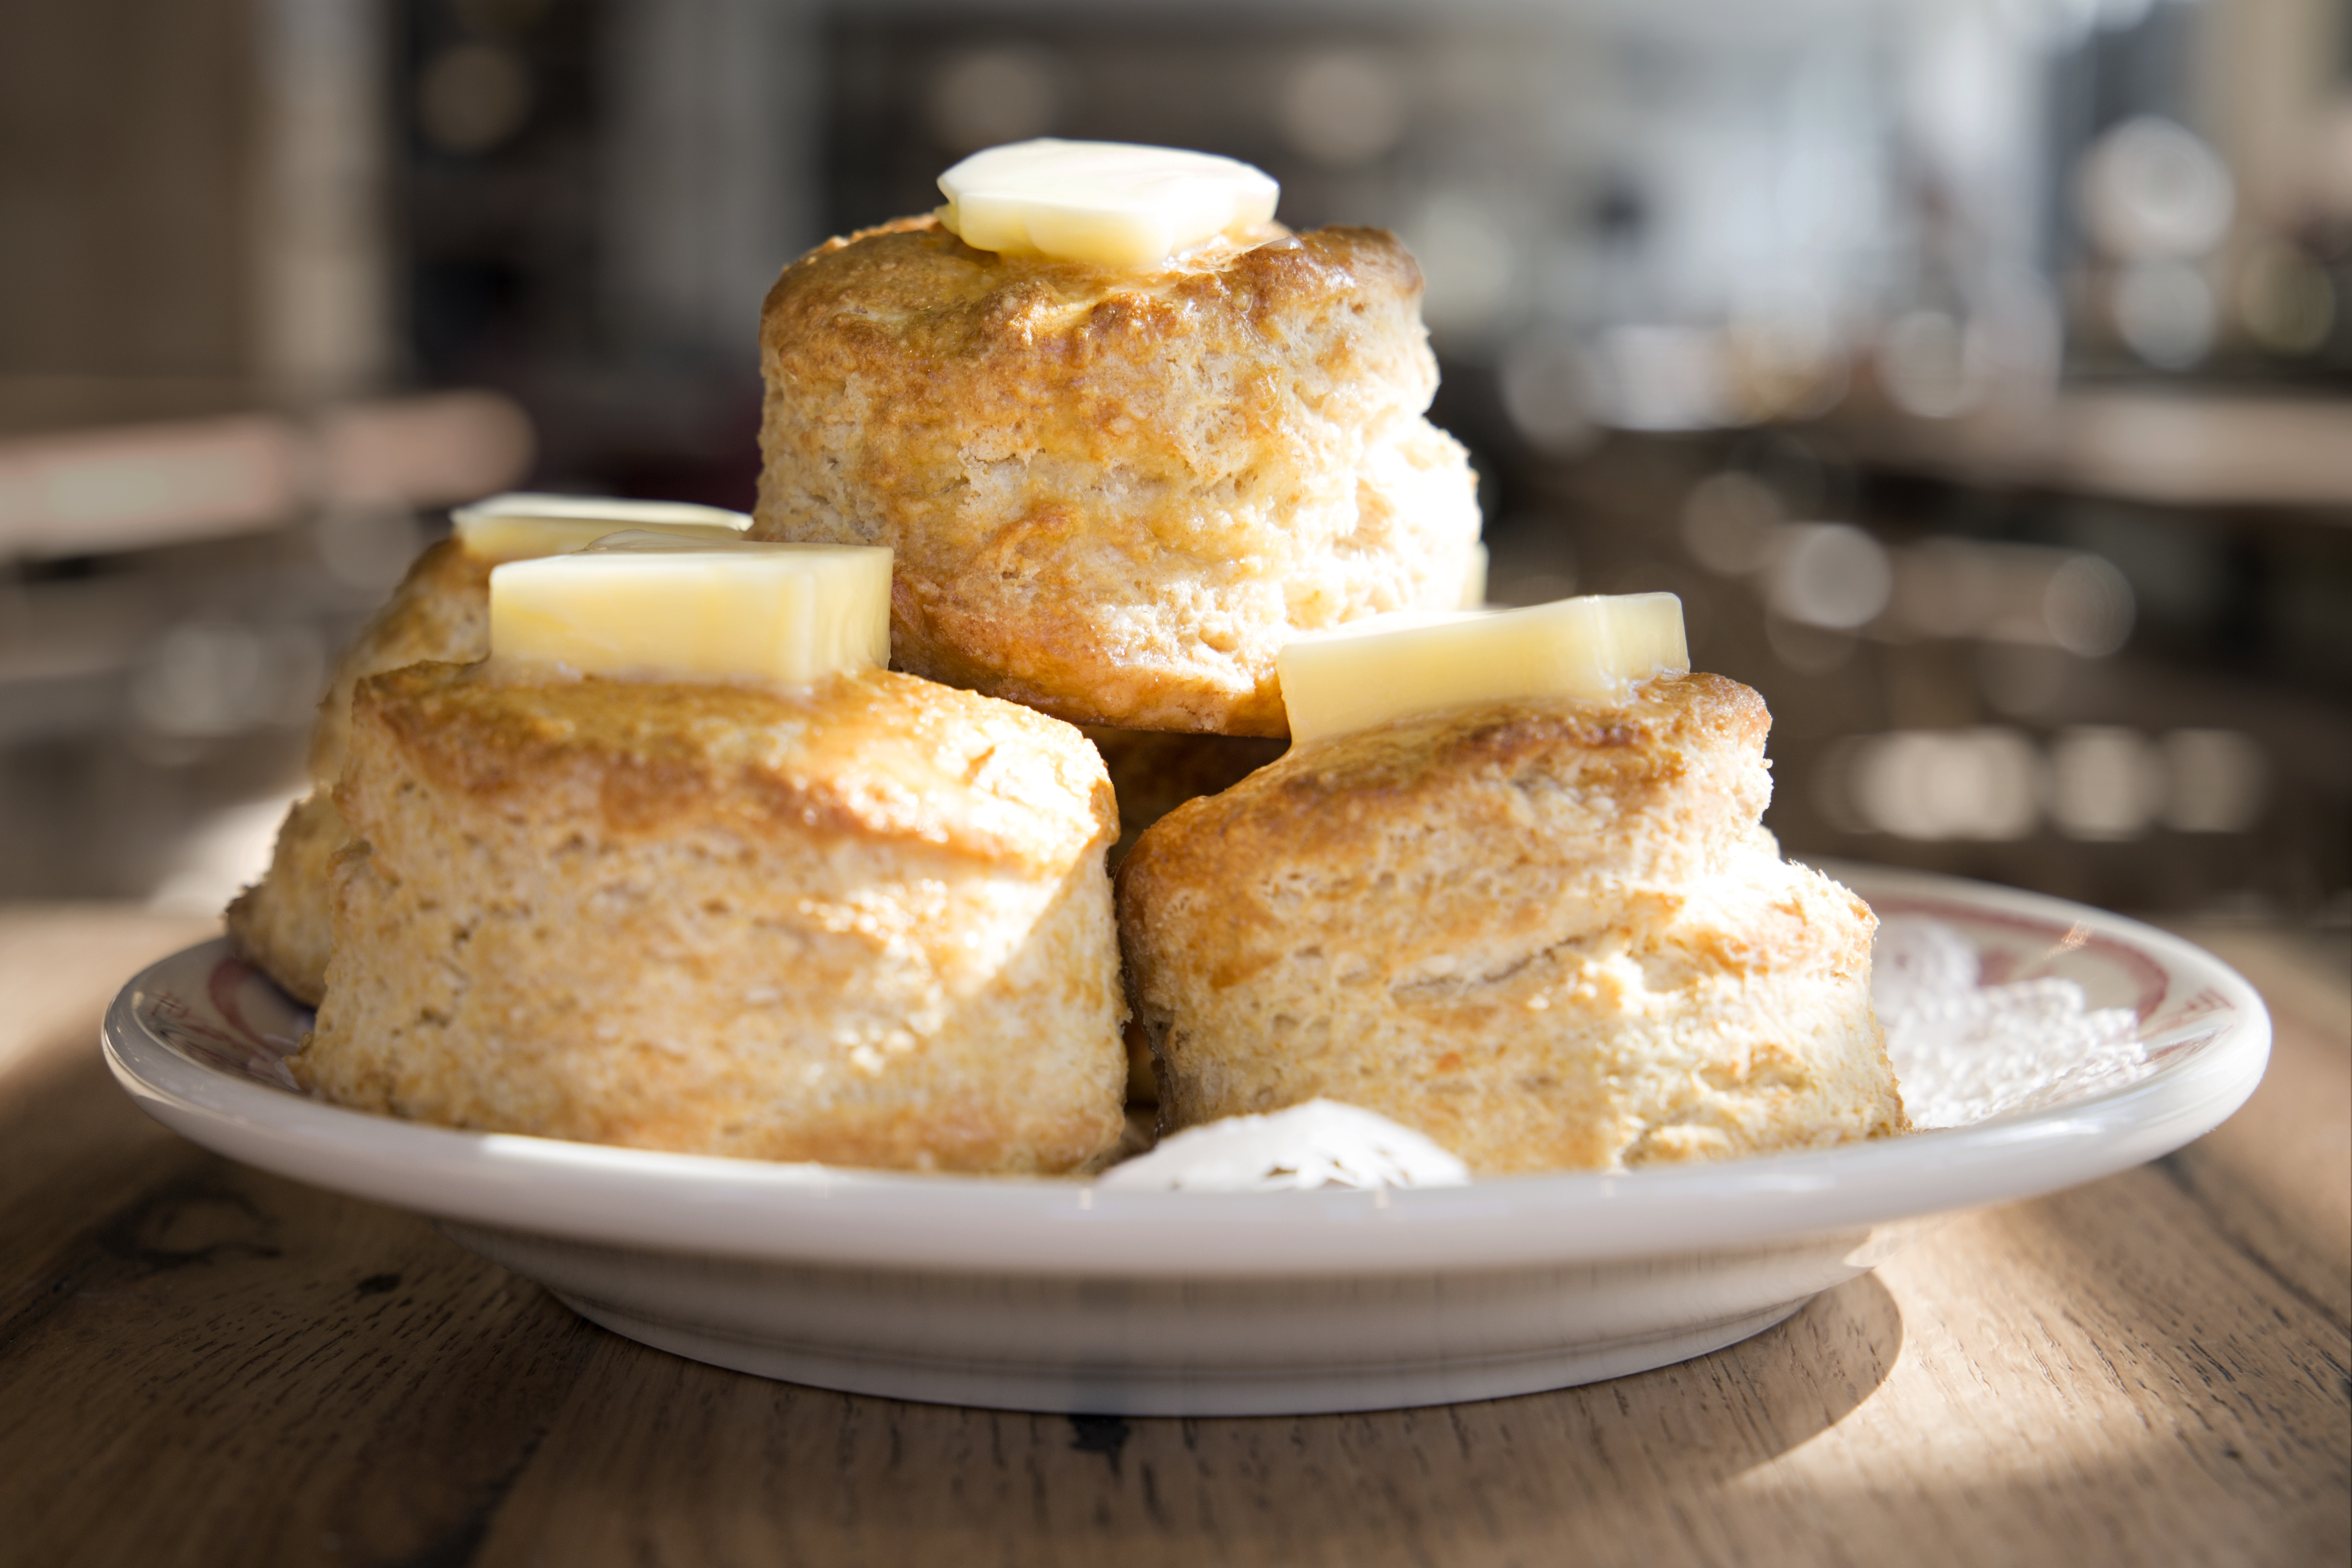 Biscuits stacked in a triangle are topped with thick squares of butter at Southern Proper in Boston's South End